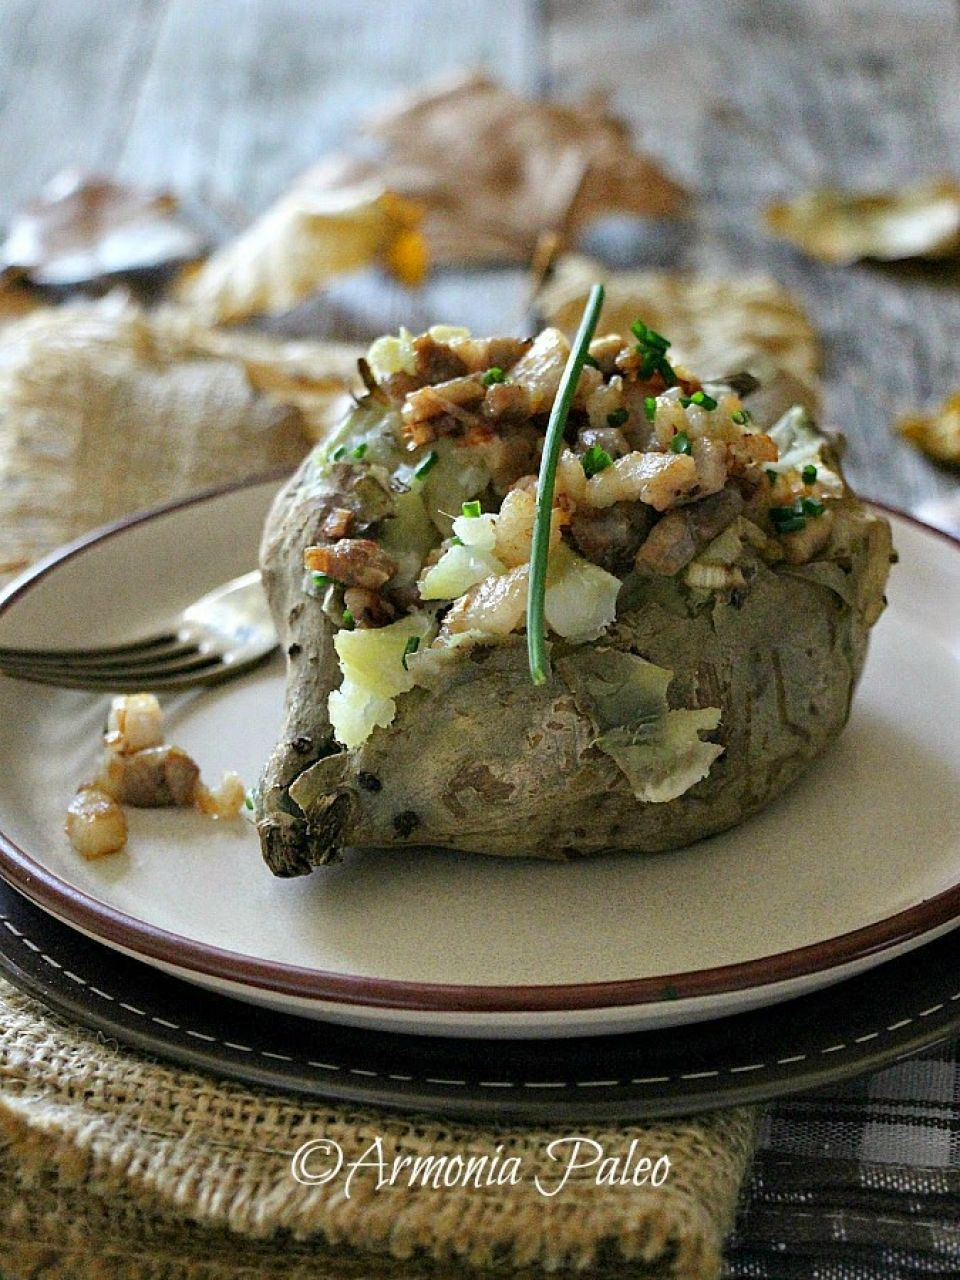 Sweet Jacket Potatoes - Patate Americane al Cartoccio